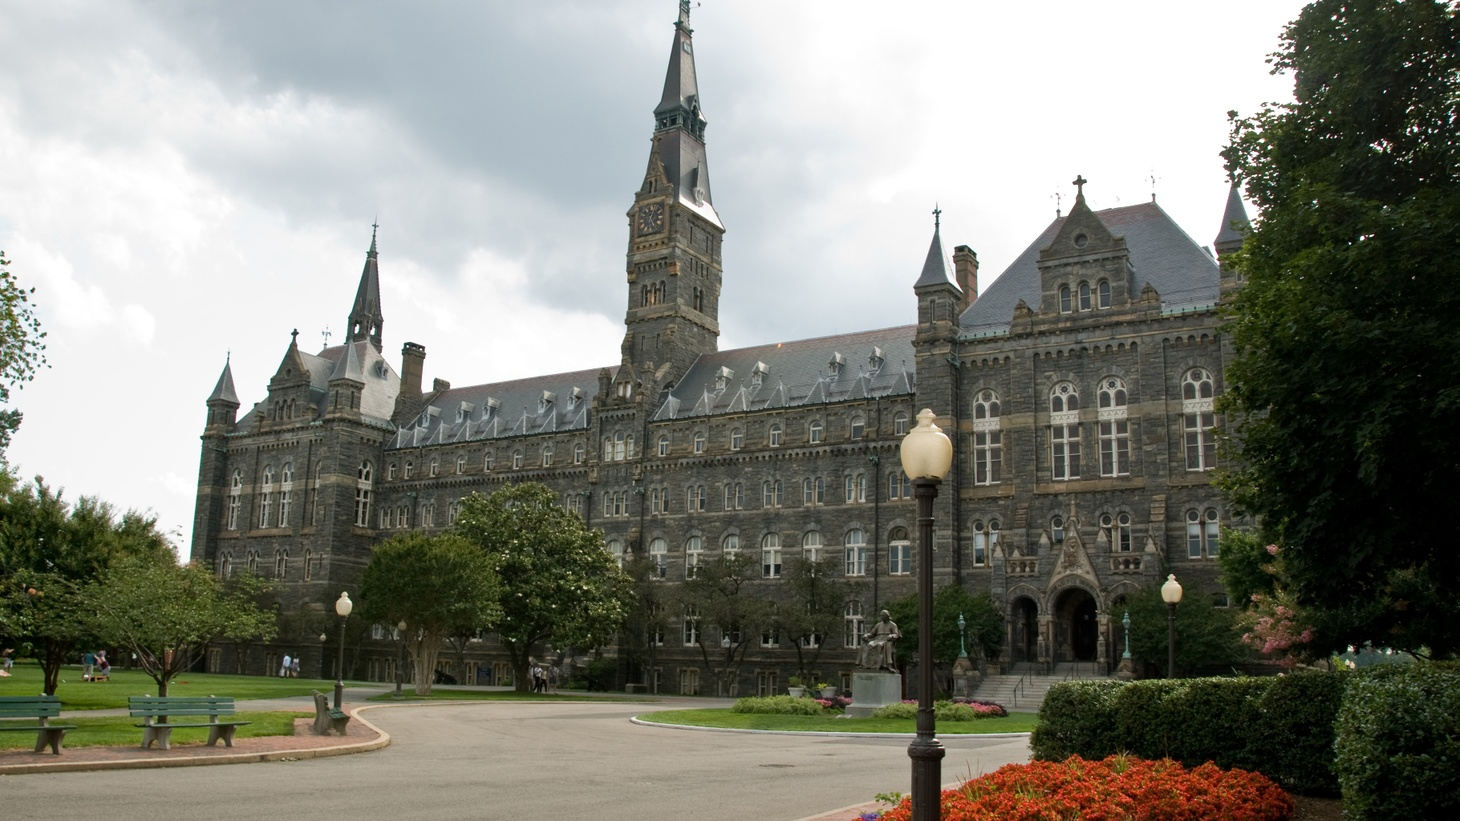 Georgetown announced it will offer preferential admission consideration to the descendants of slaves the university once owned. How are other schools confronting their connections to slavery?